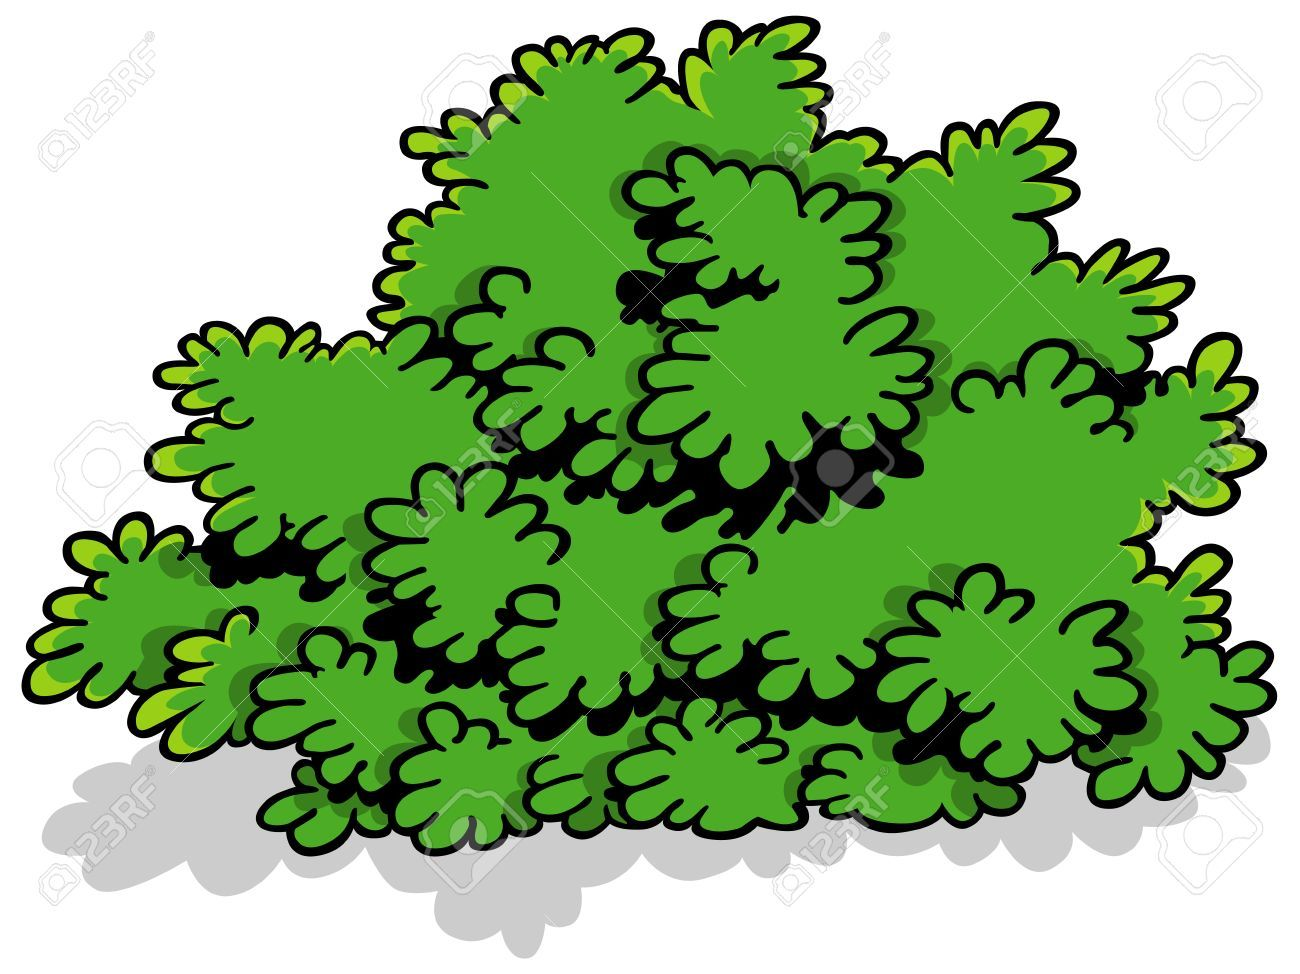 Clipart of shrubs png royalty free stock Clipart shrubs 6 » Clipart Portal png royalty free stock